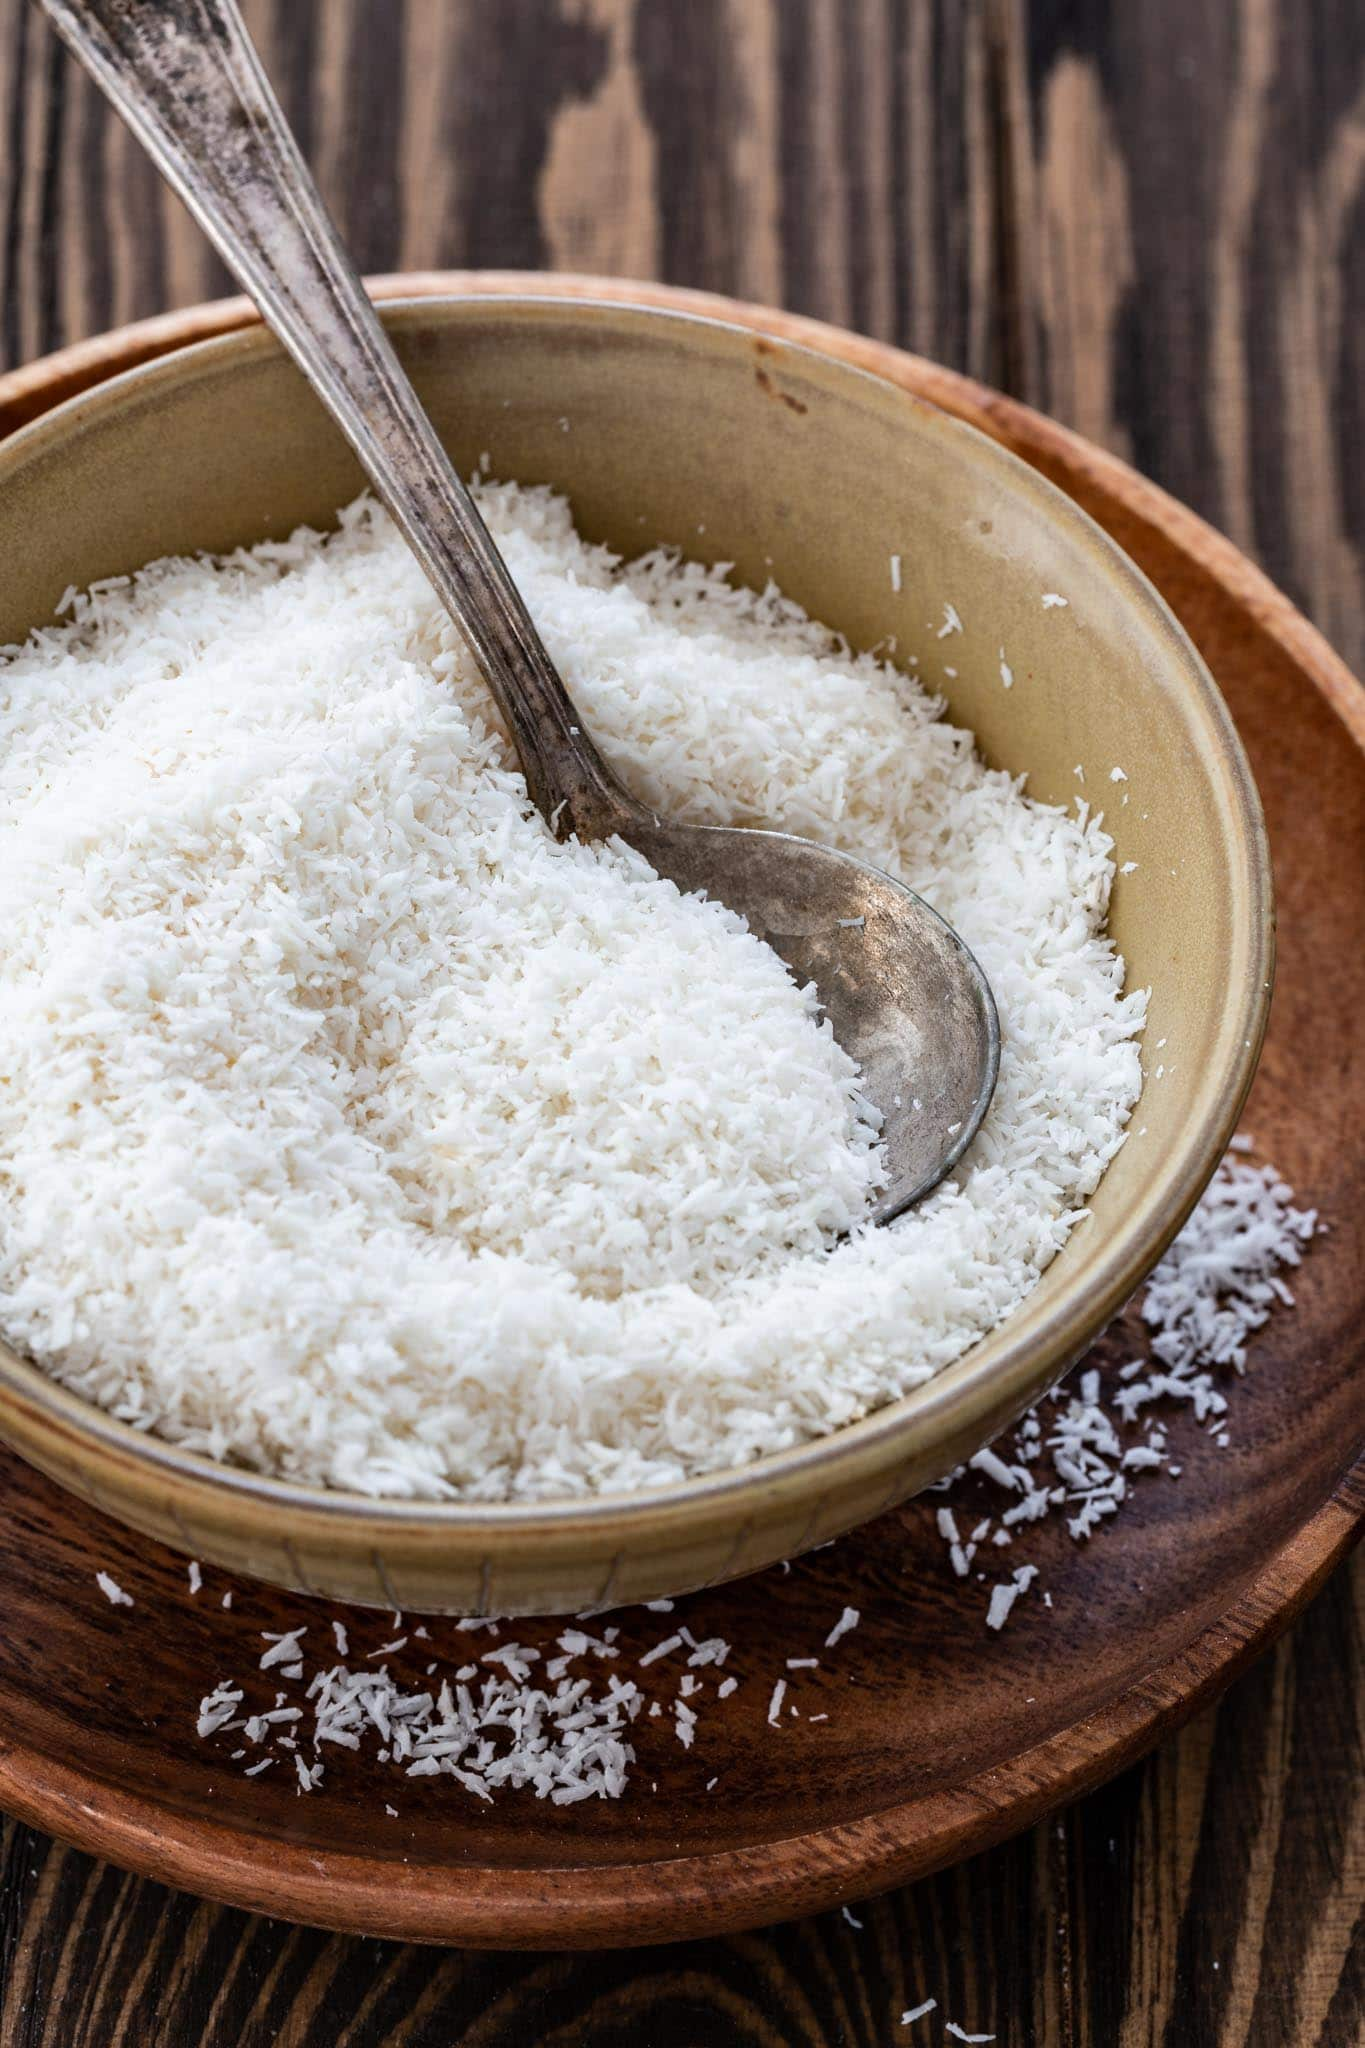 A small bowl of unsweetened shredded coconut.